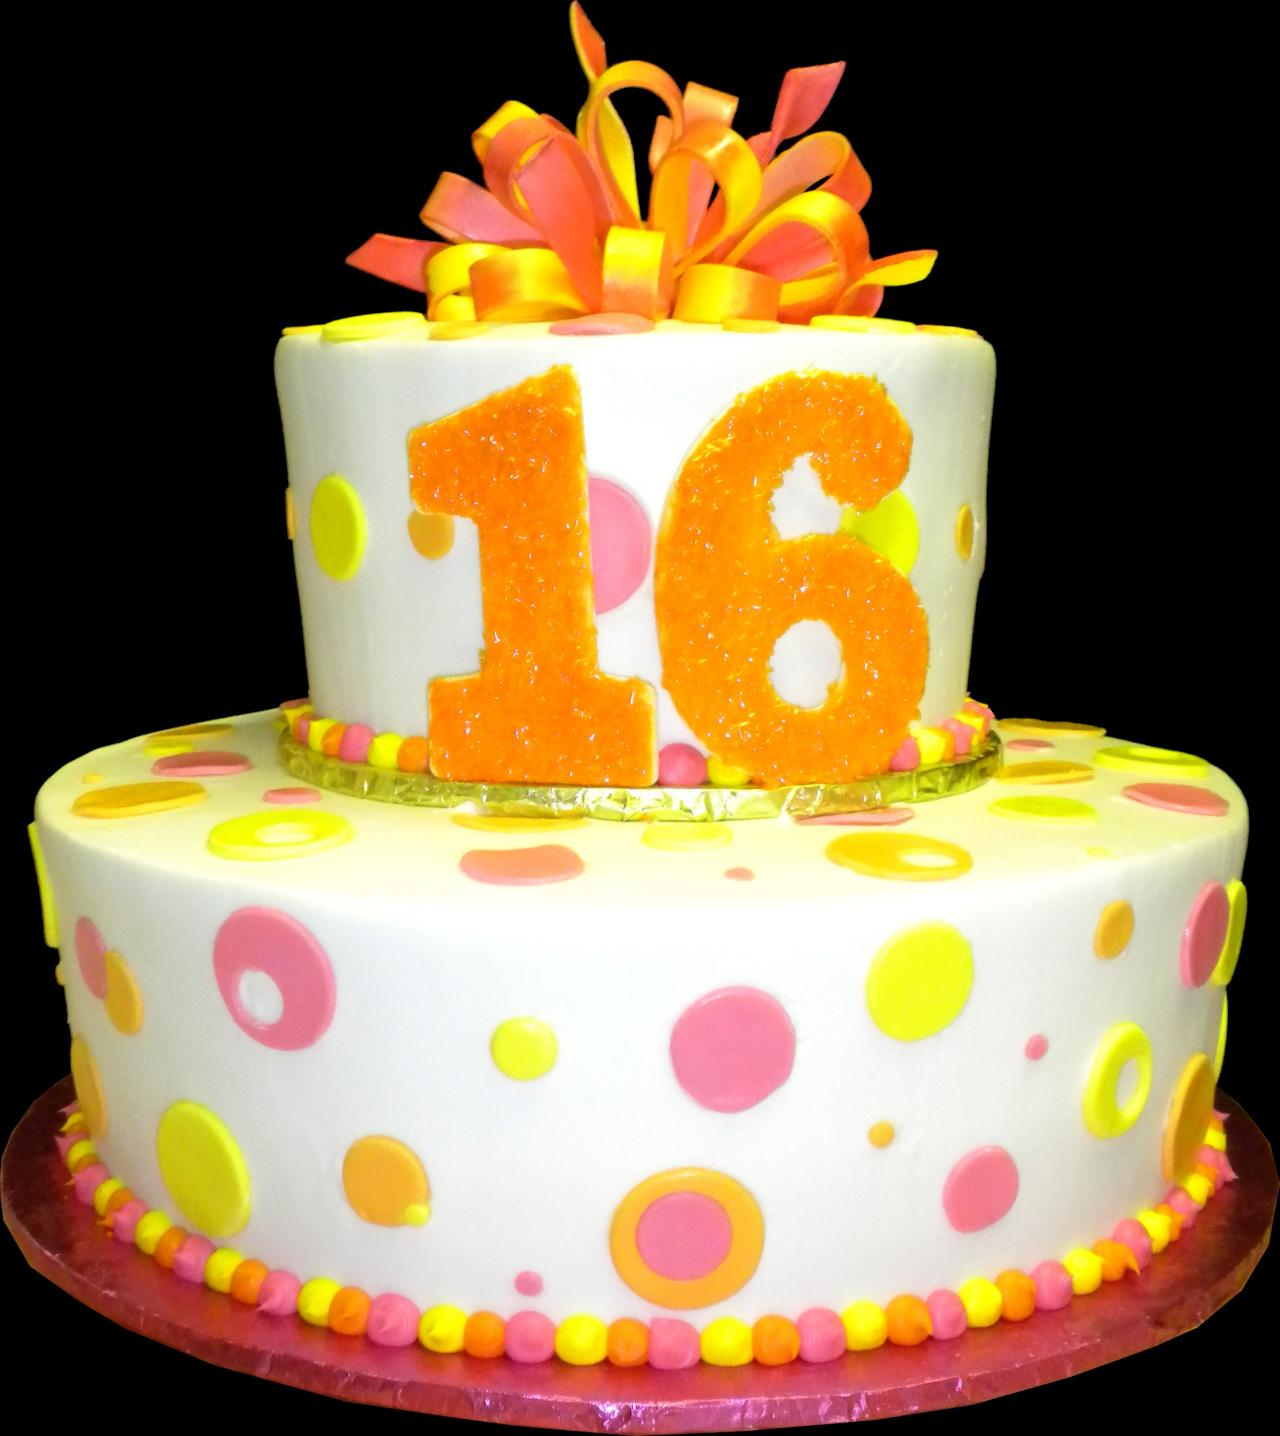 Sweet 16 Birthday Cake White Buttercream Iced 2 Round Tiers Decorated With Dots